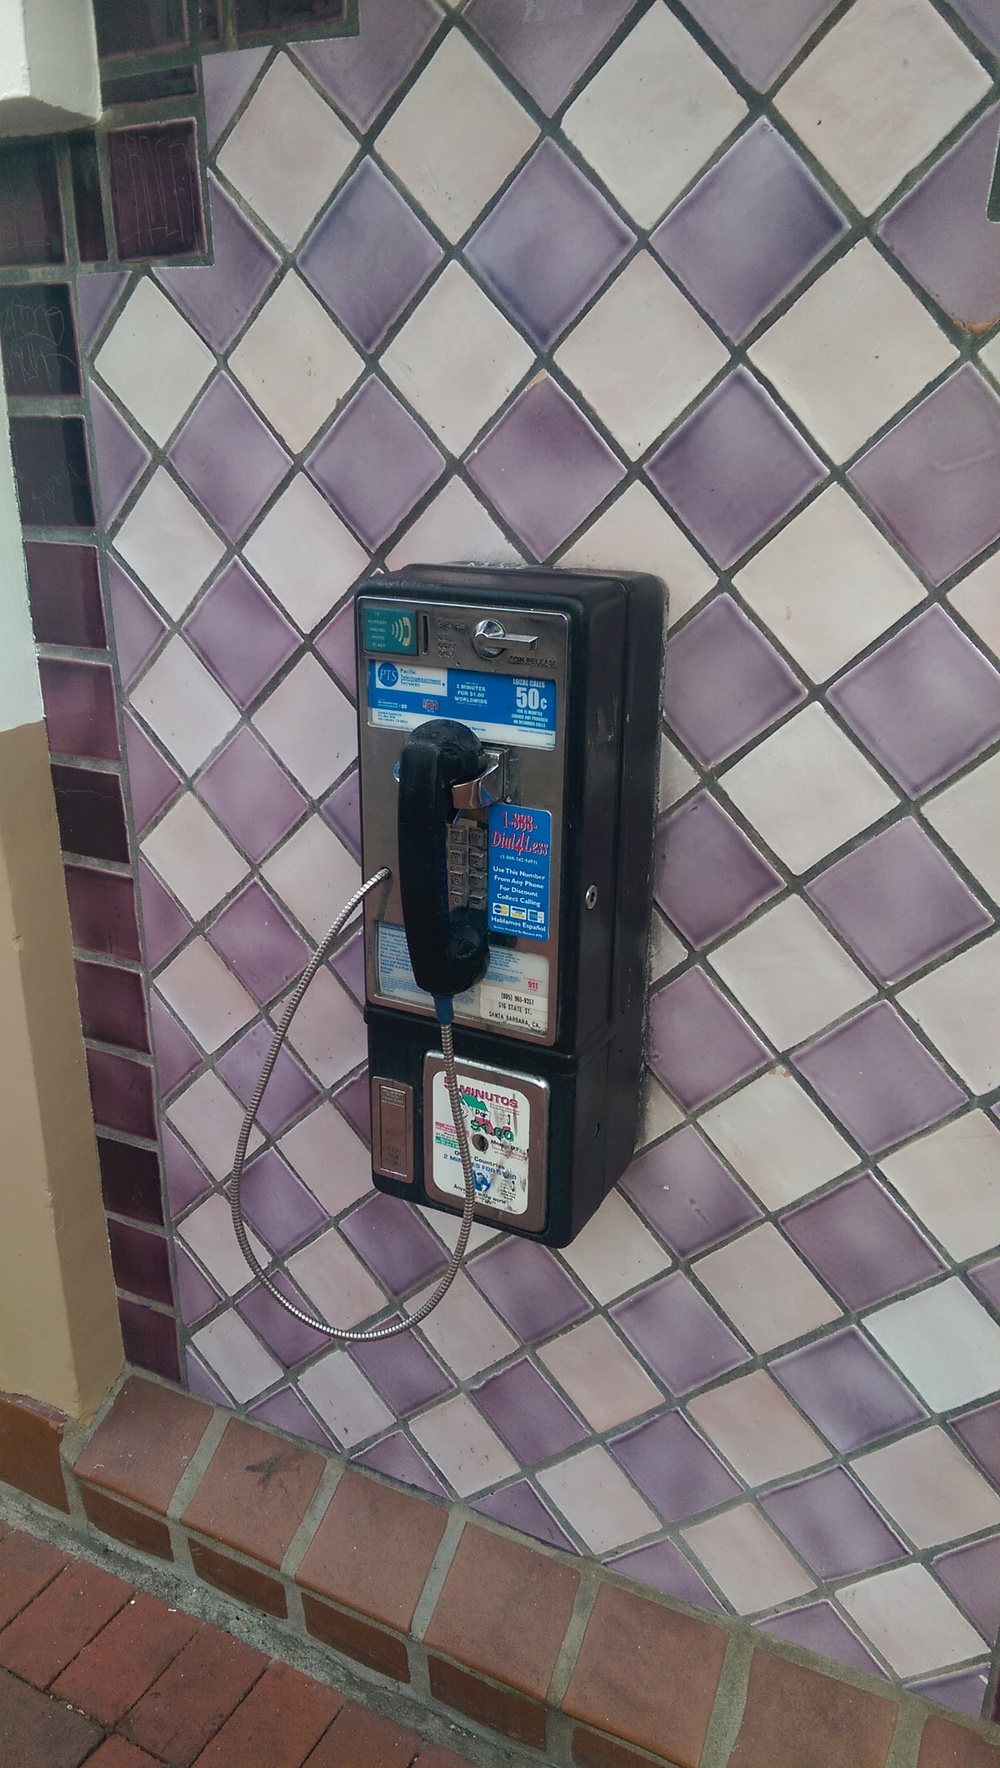 Downtown Santa Barbara. I threw this in just because I didn't know there were still payphones around.